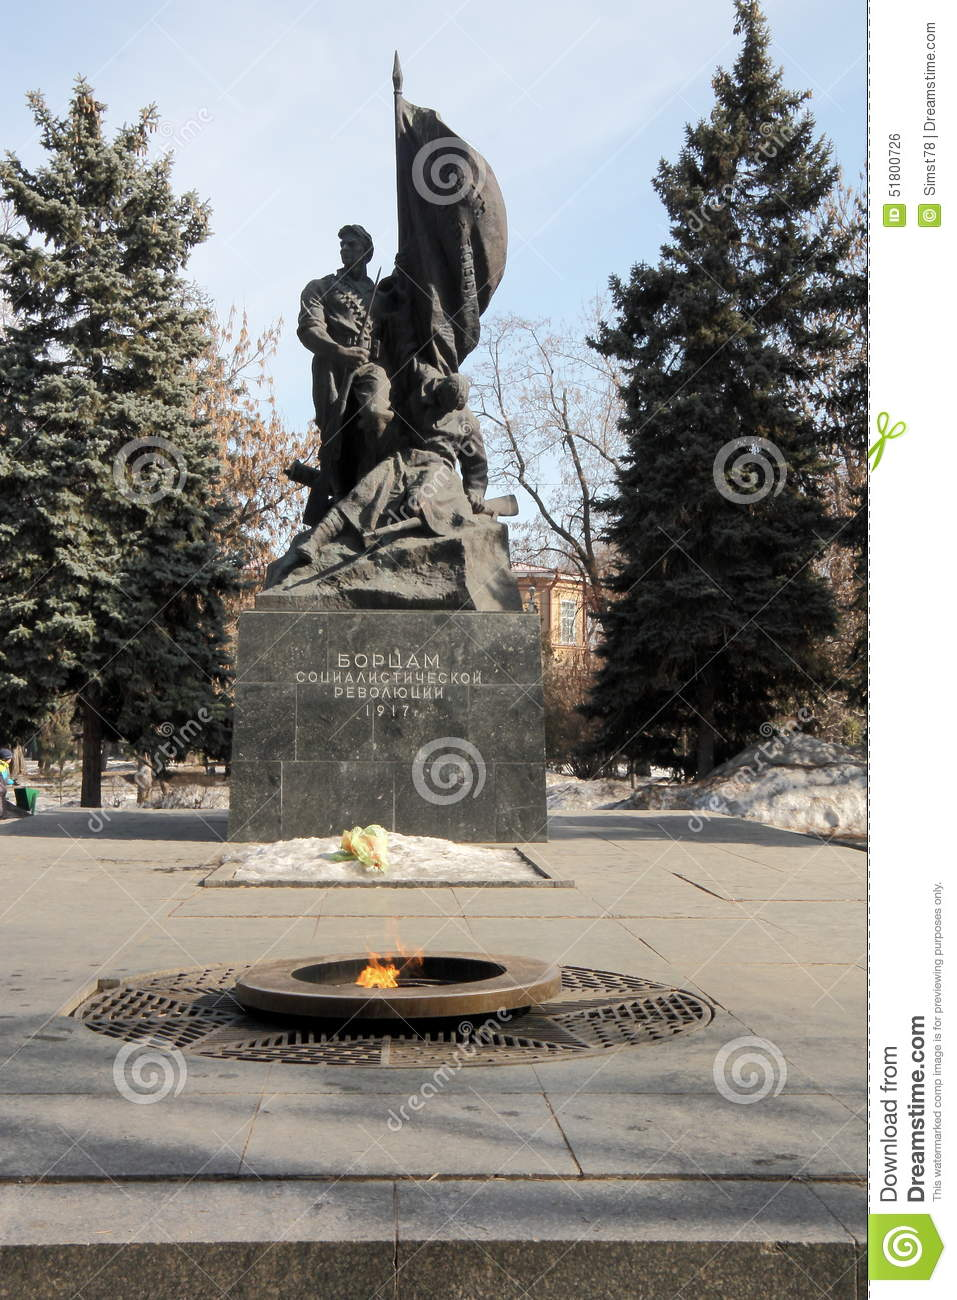 Monument to the fighters of the socialist revolution of 1917